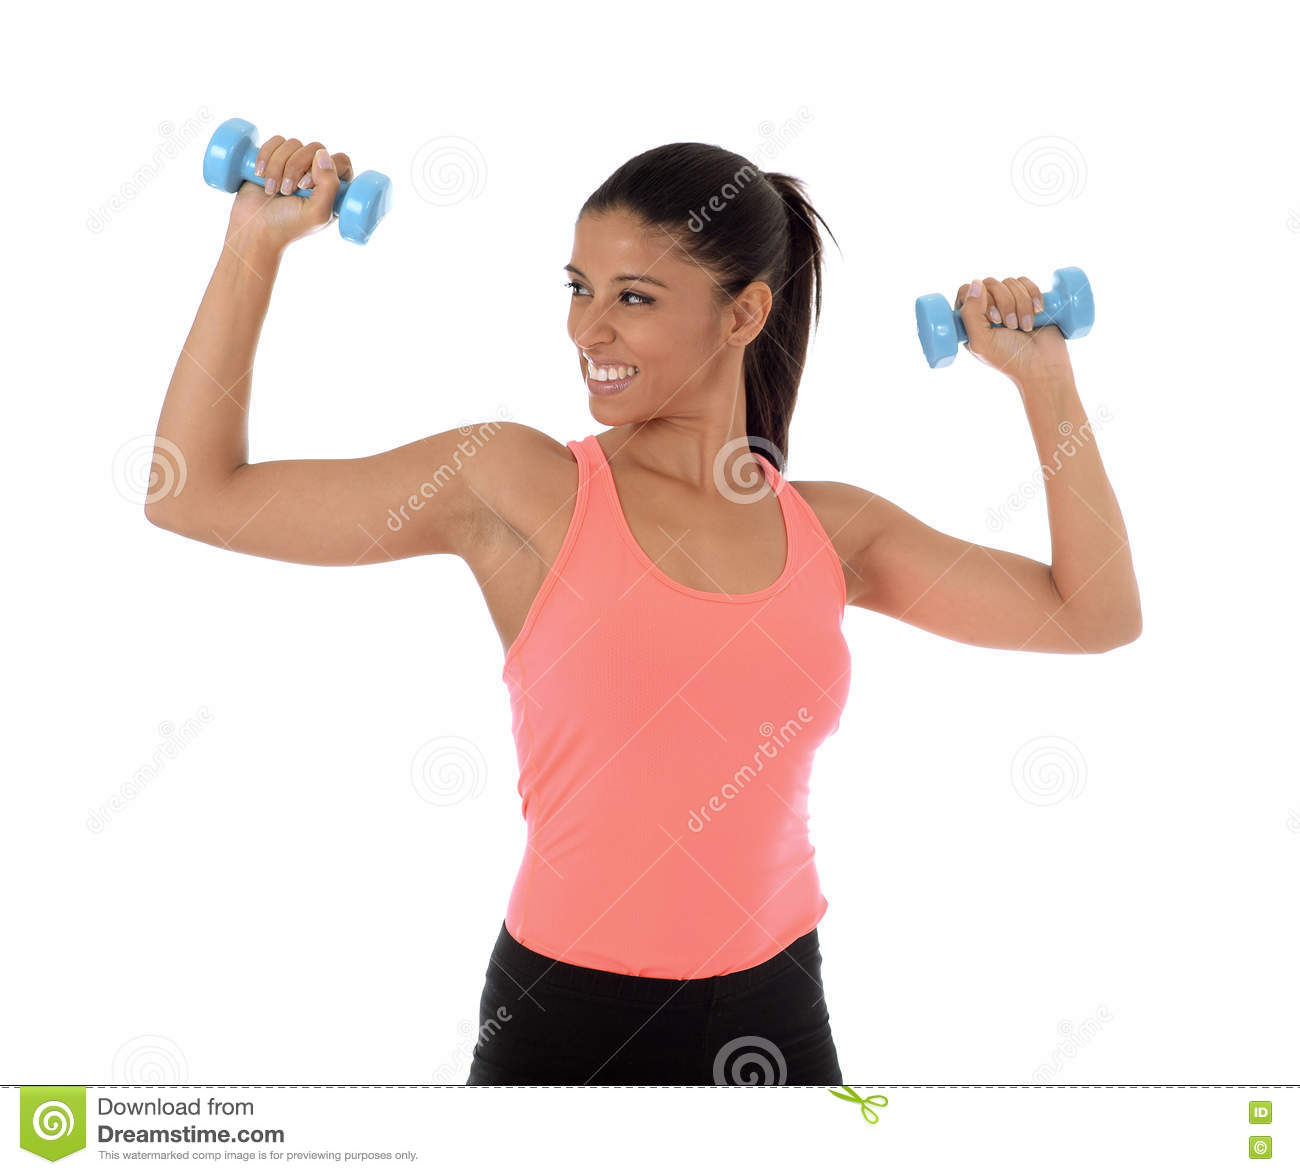 Beautiful and exotic hispanic woman holding hand weights training in fitness concept